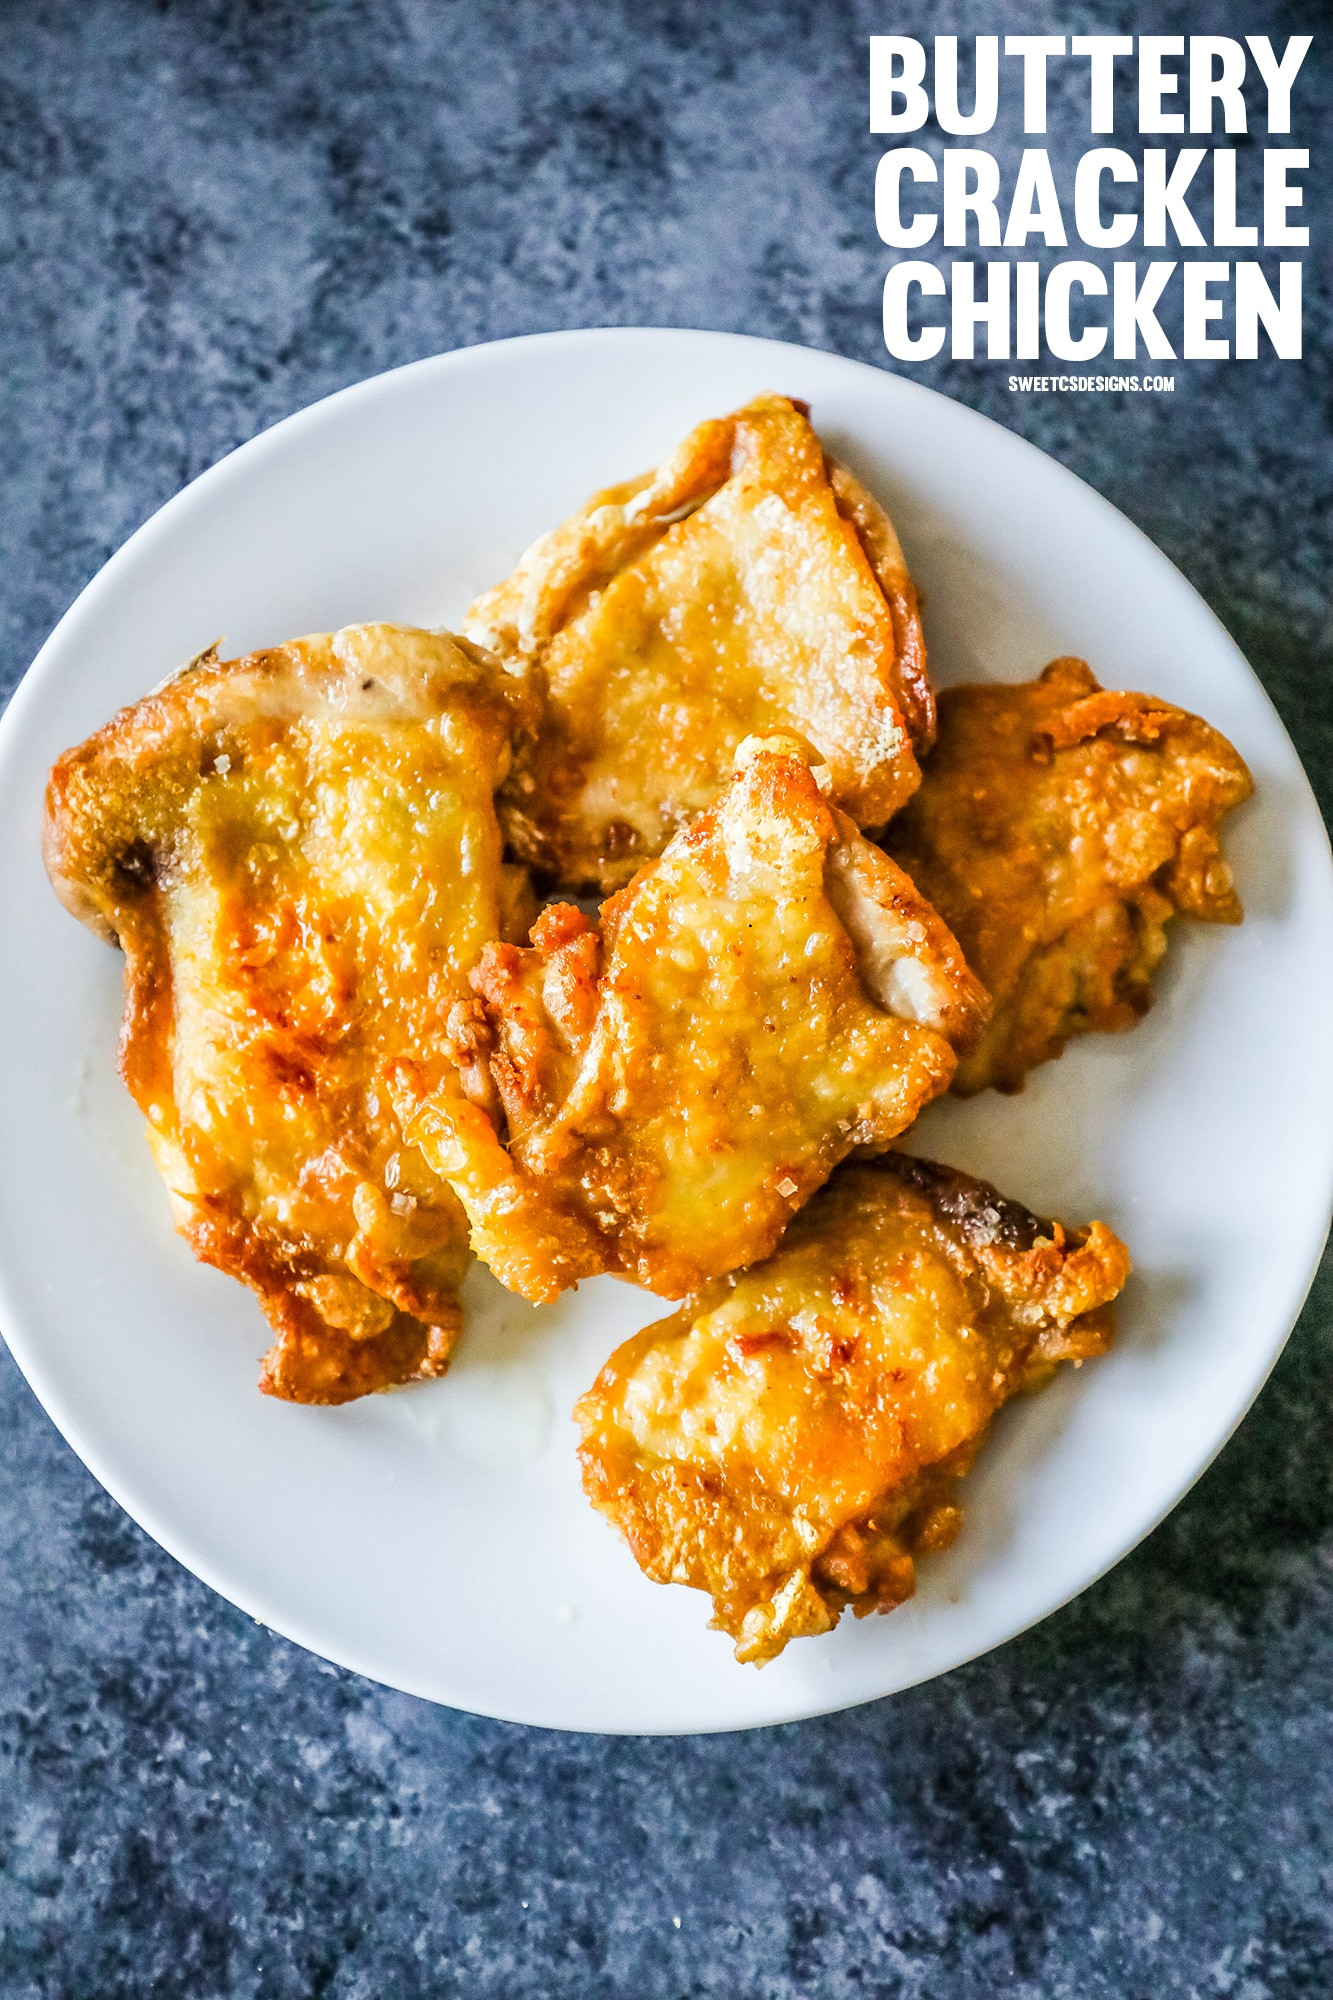 Keto Crispy Chicken Thighs  Easy Low Carb Keto Buttery Crackle Chicken Thighs